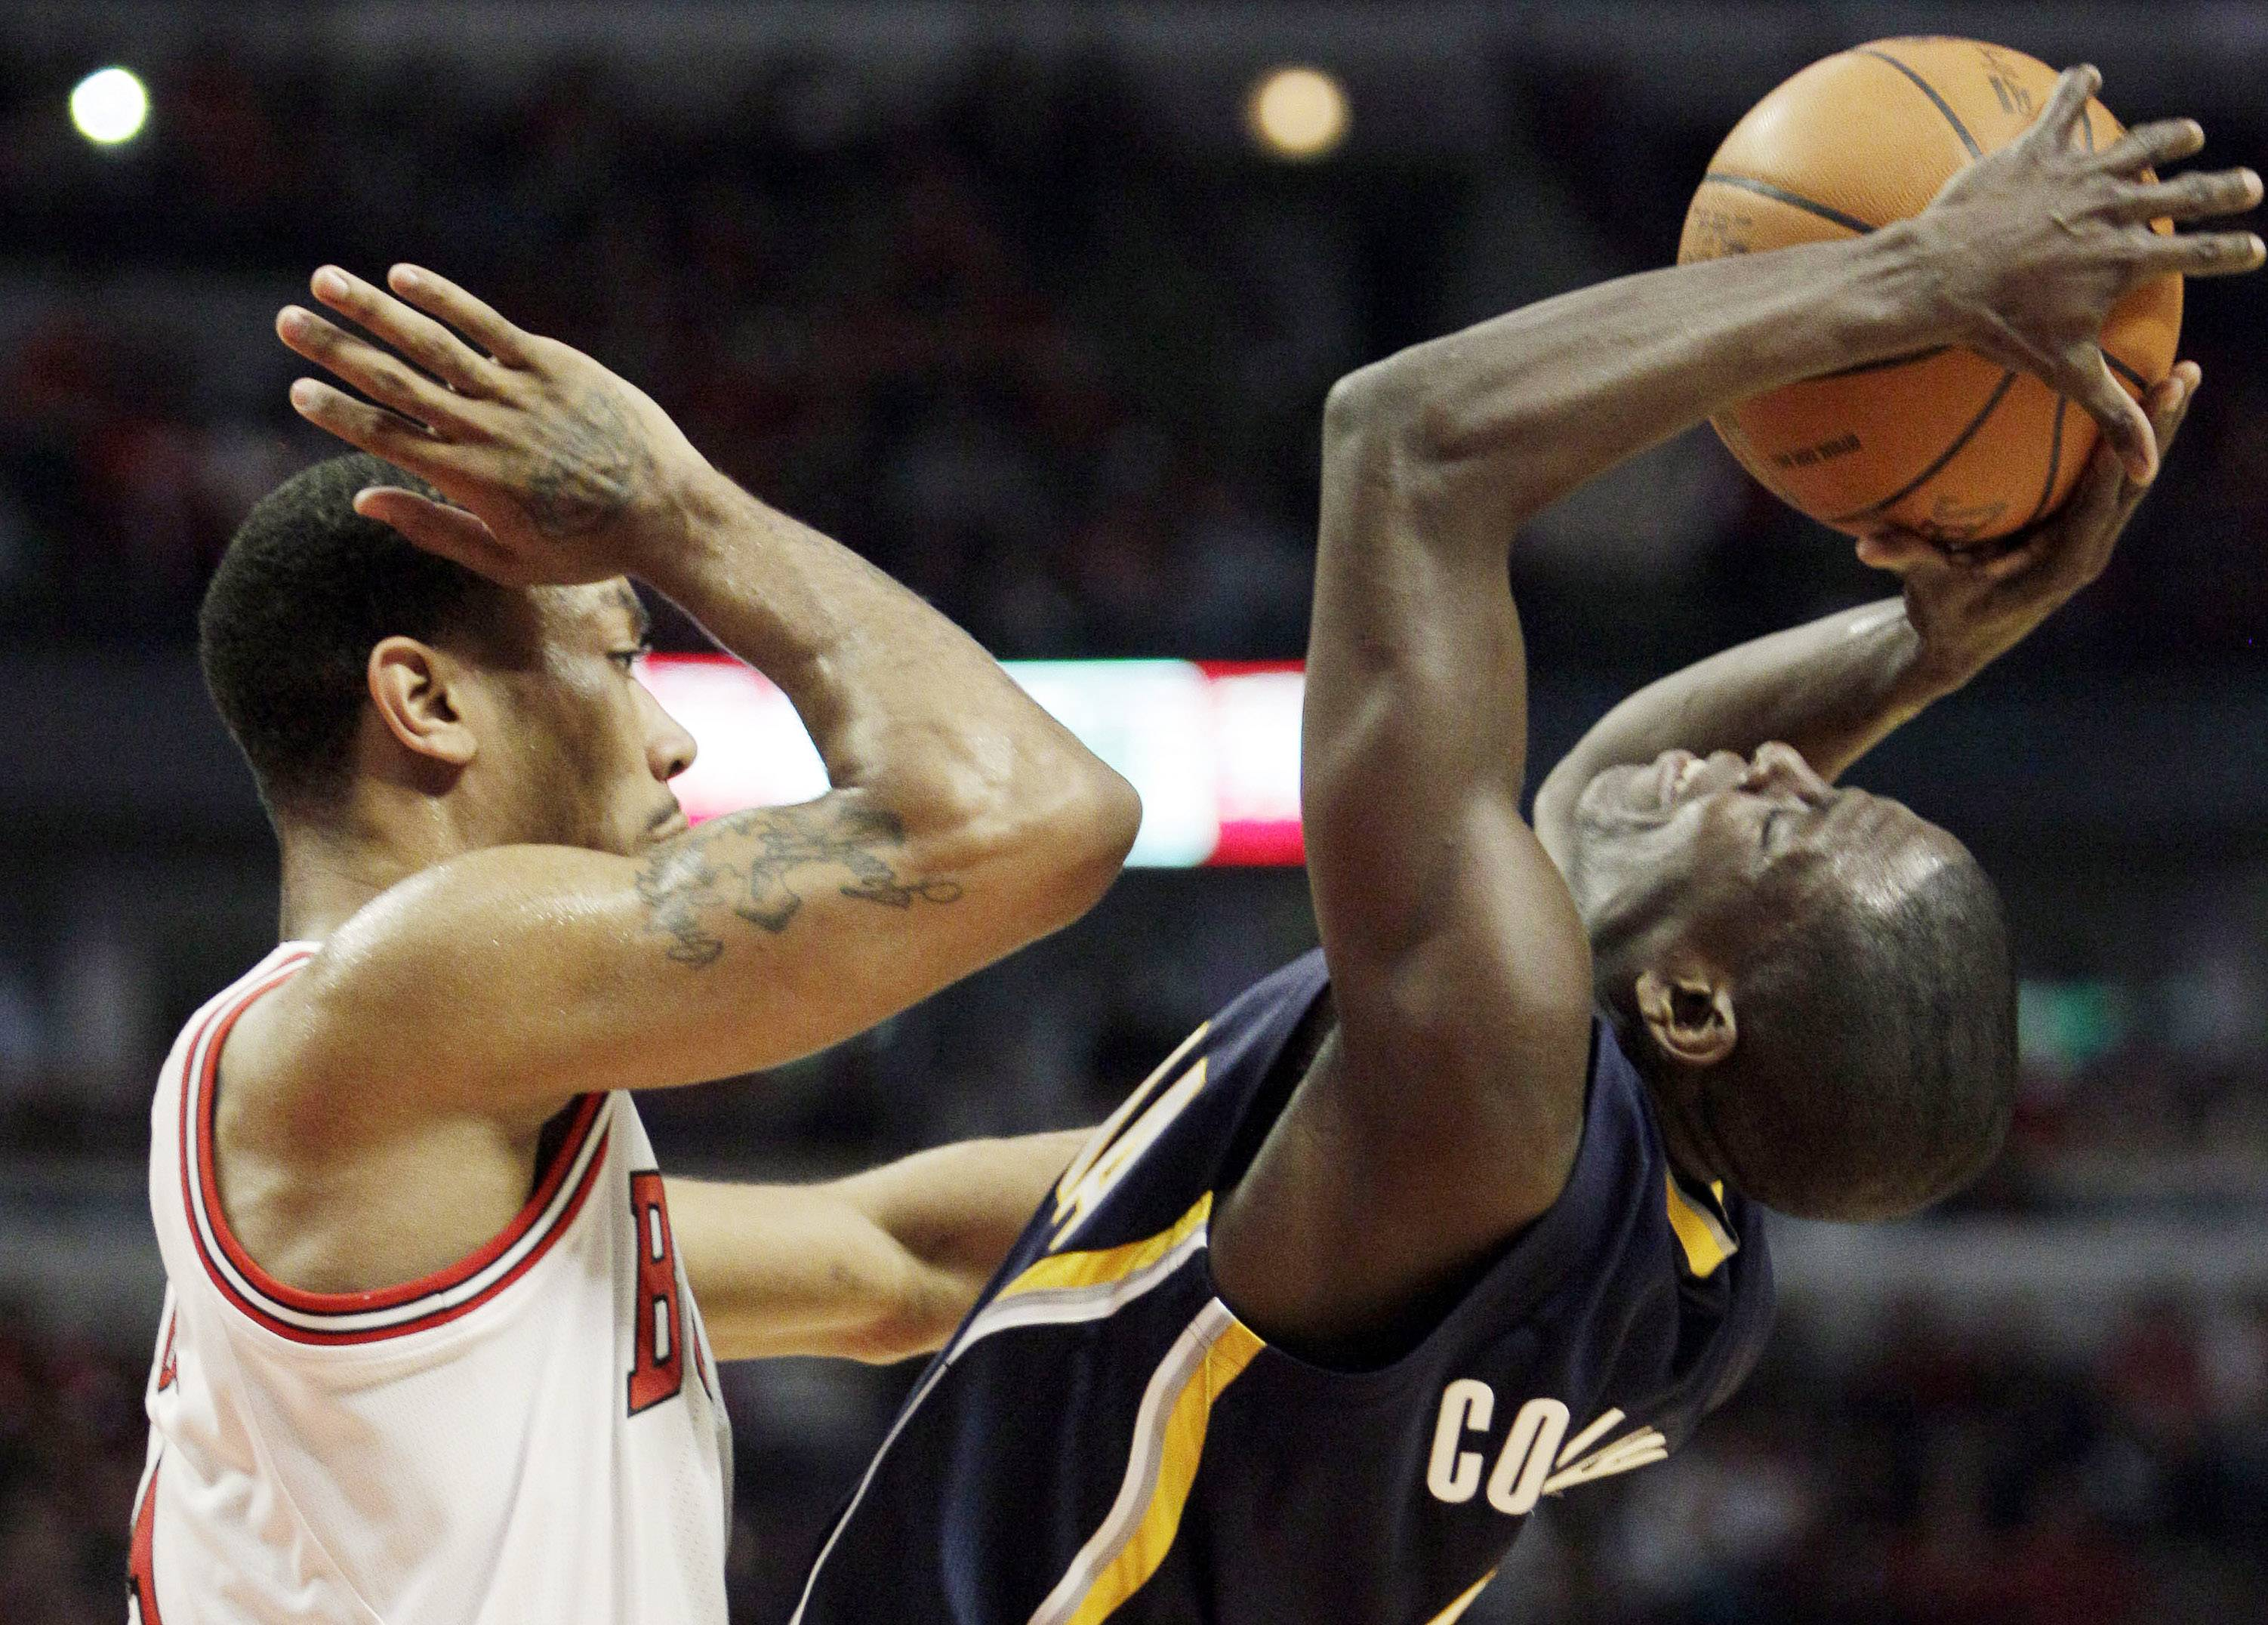 Derrick Rose defends against the Indiana Pacers' Darren Collison during the second quarter in Game 1 Saturday.